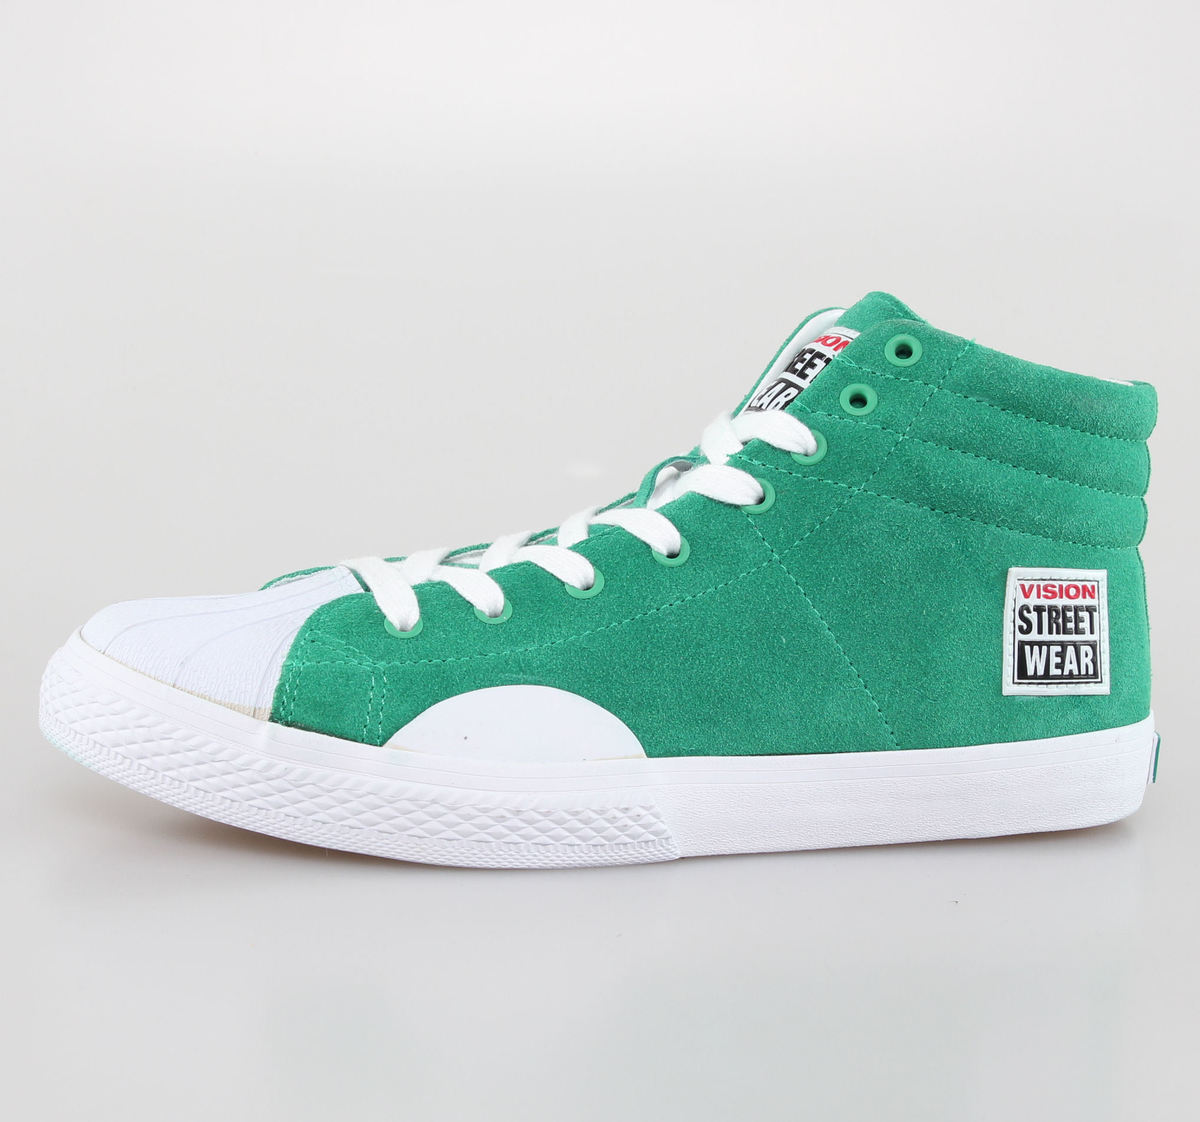 boty pánské VISION - Suede HI - Pepper Green/White - VMF4FWSH01